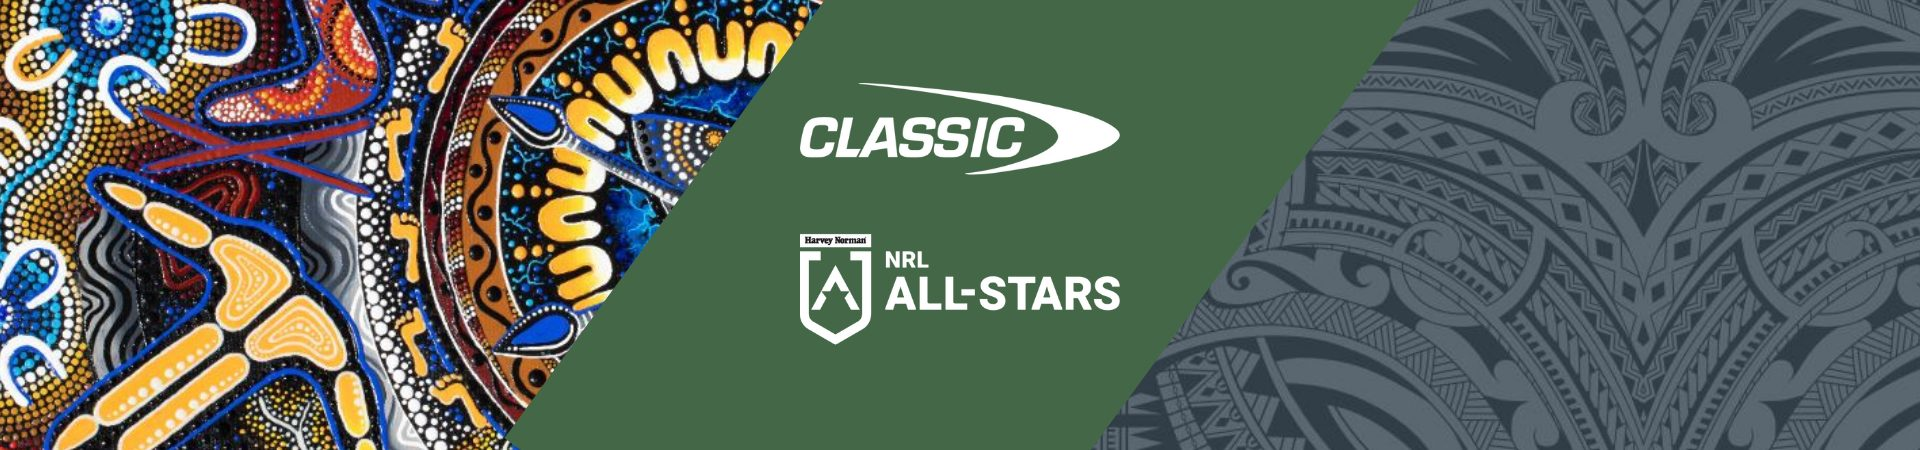 Classic Sportswear extends partnership with All Stars and supports NRL indigenous youth programs